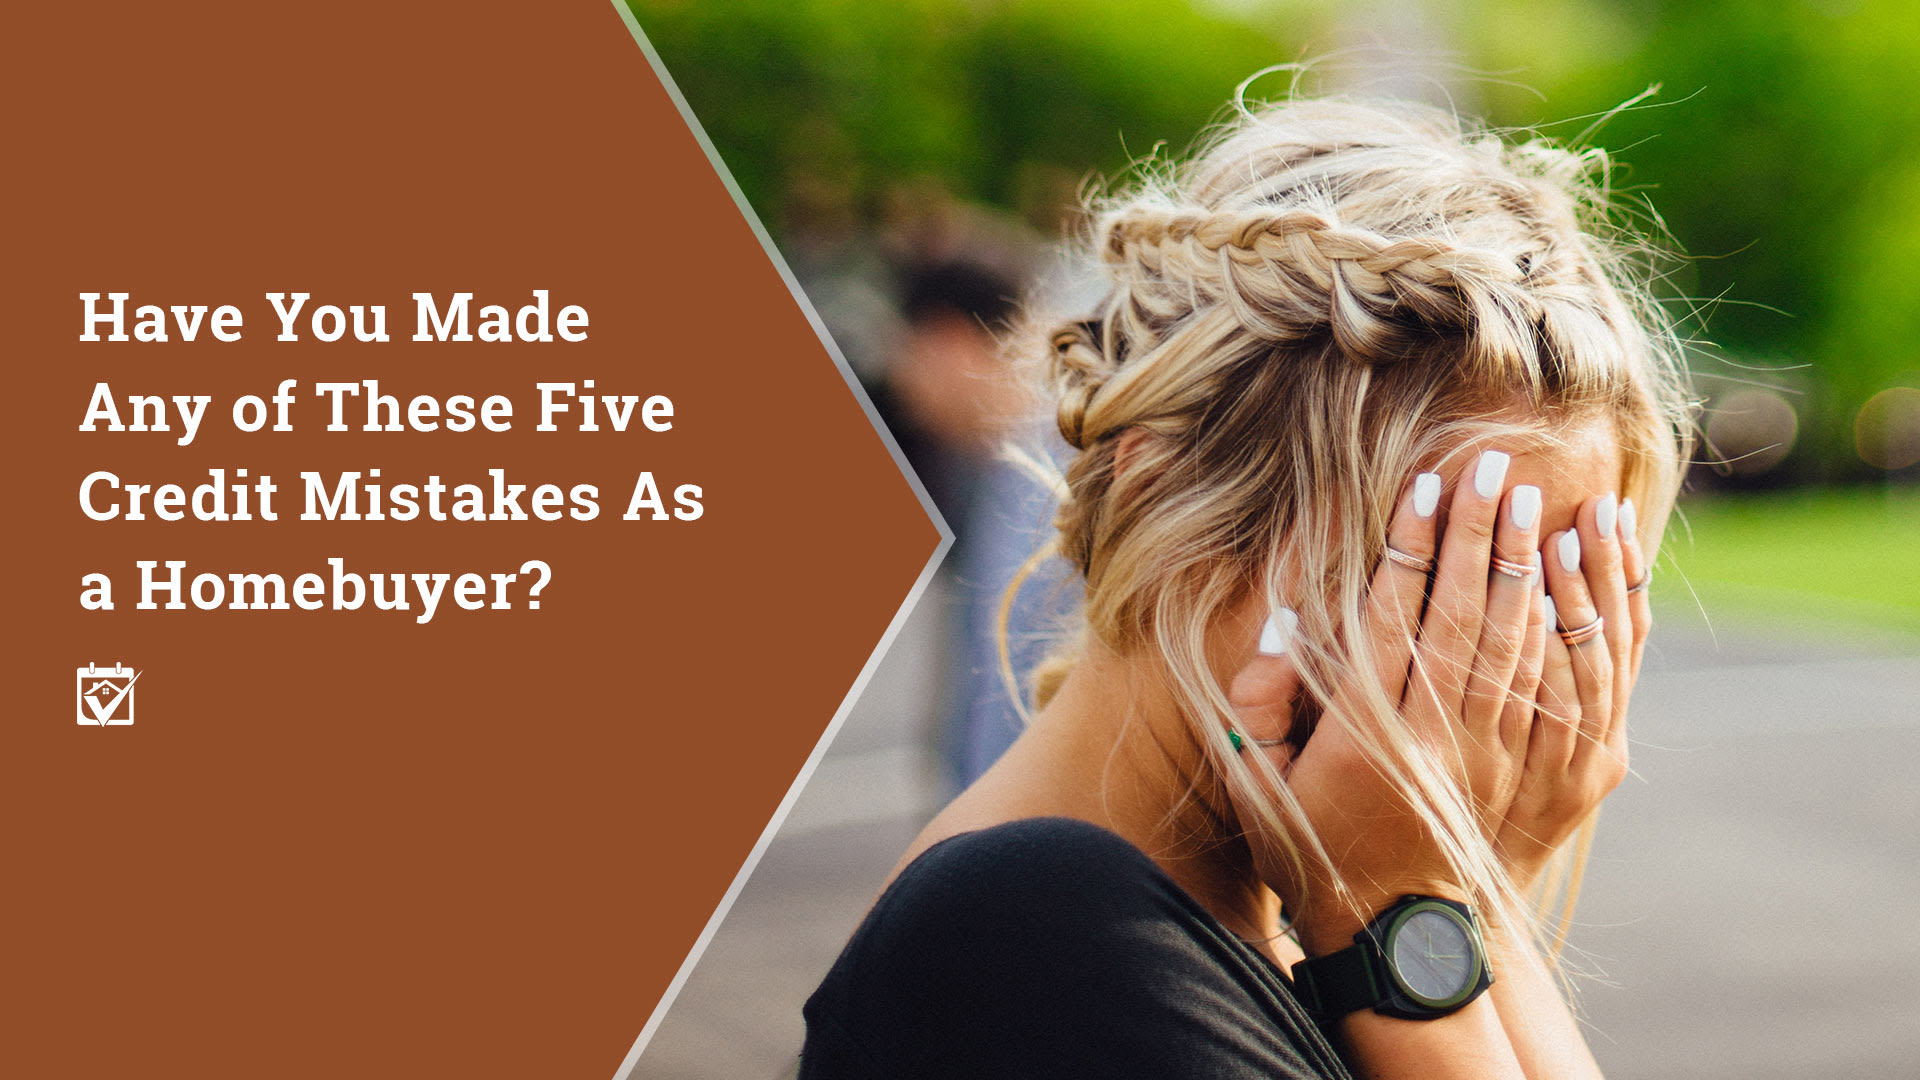 Have You Made Any of These 5 Credit Mistakes As a Homebuyer?